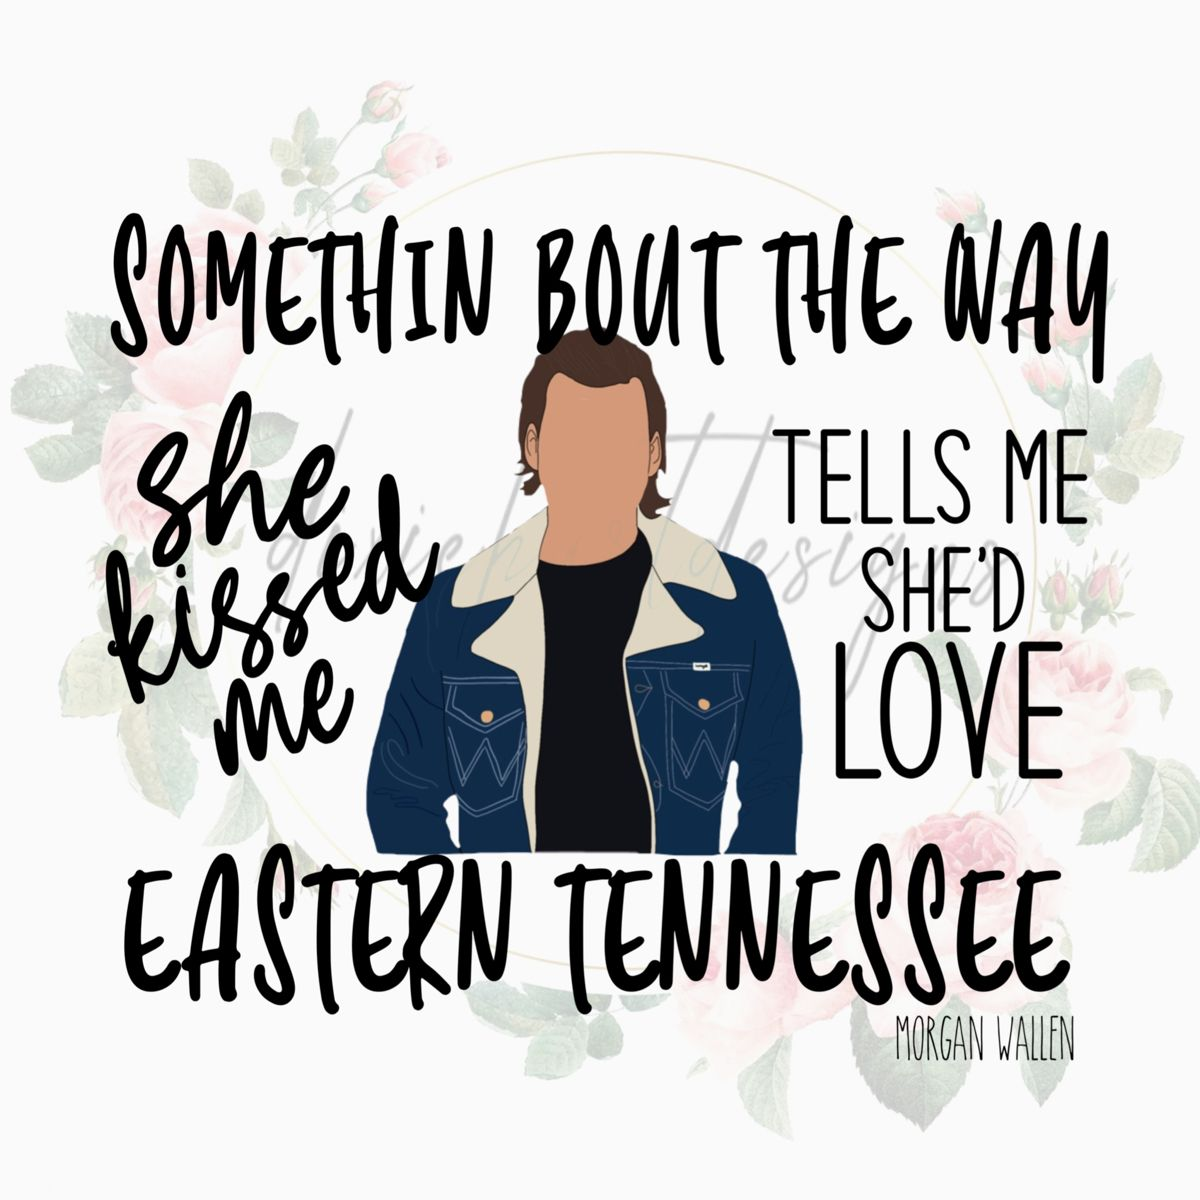 Morgan Wallen Png Sand In My Boots Dangerous Album Digital Etsy In 2021 Country Lyrics Quotes Country Music Lyrics Quotes Country Music Quotes